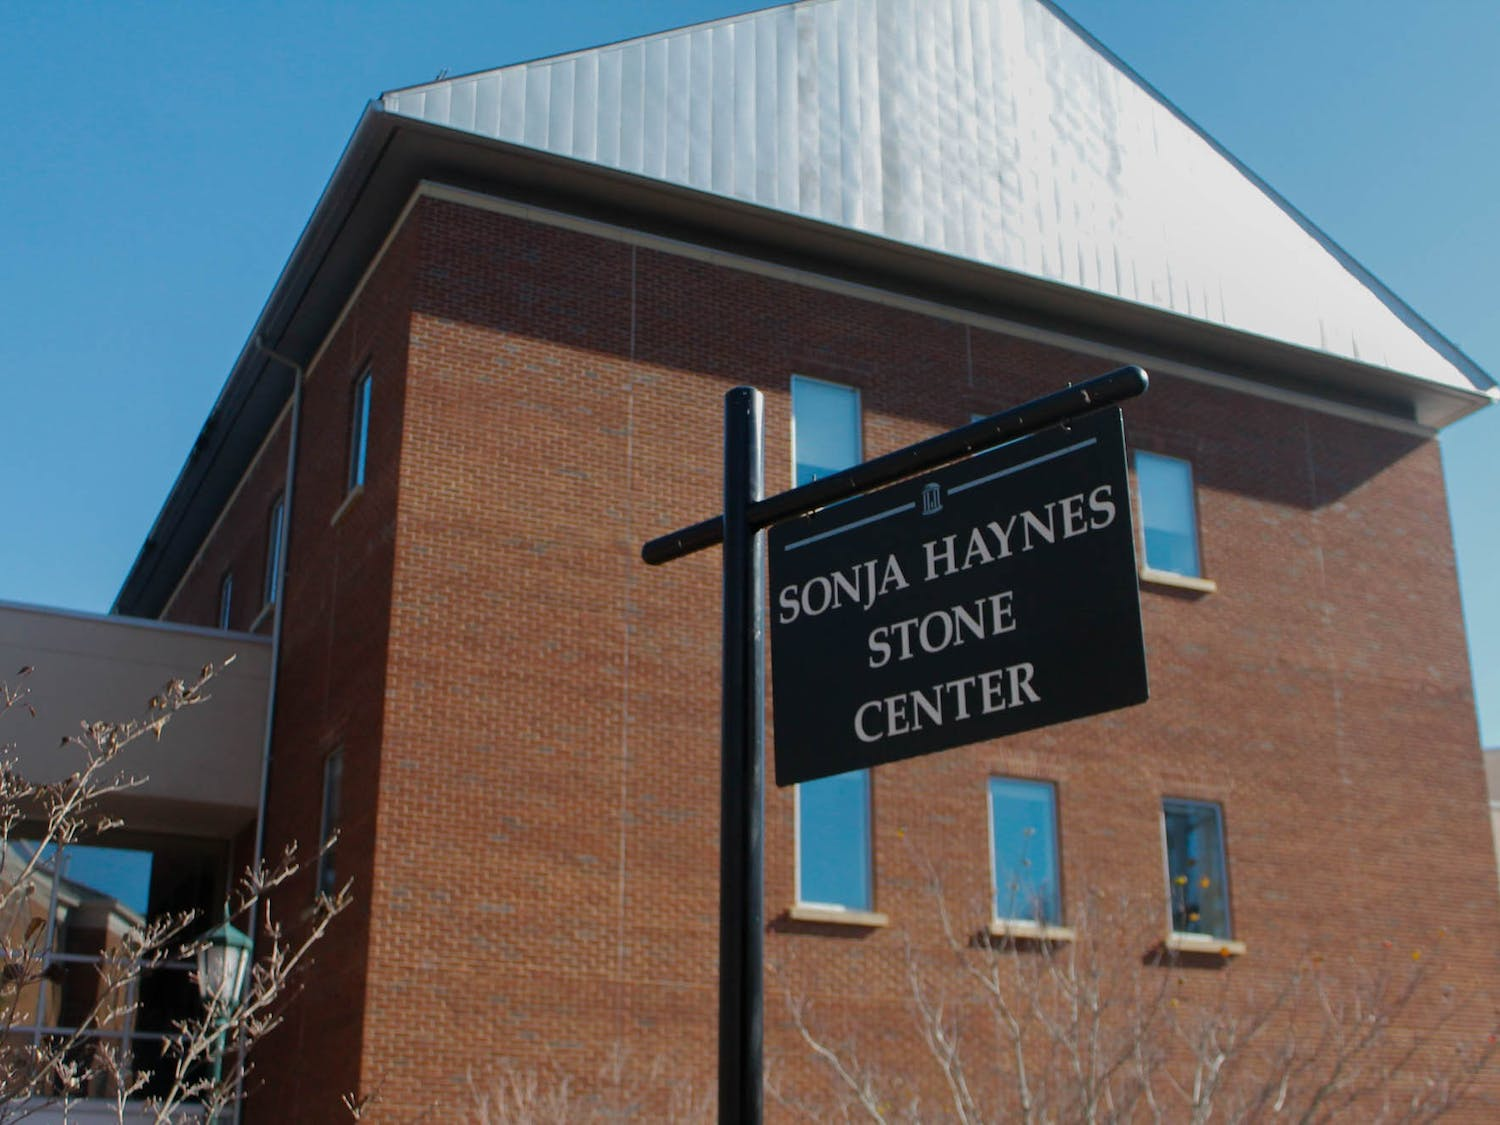 The Sonja Haynes Stone Center pictured on UNC's campus on Sunday, Feb. 9, 2020. The Stone Center will serve as a voting location for the democratic primary on Tuesday, March 3, 2020.